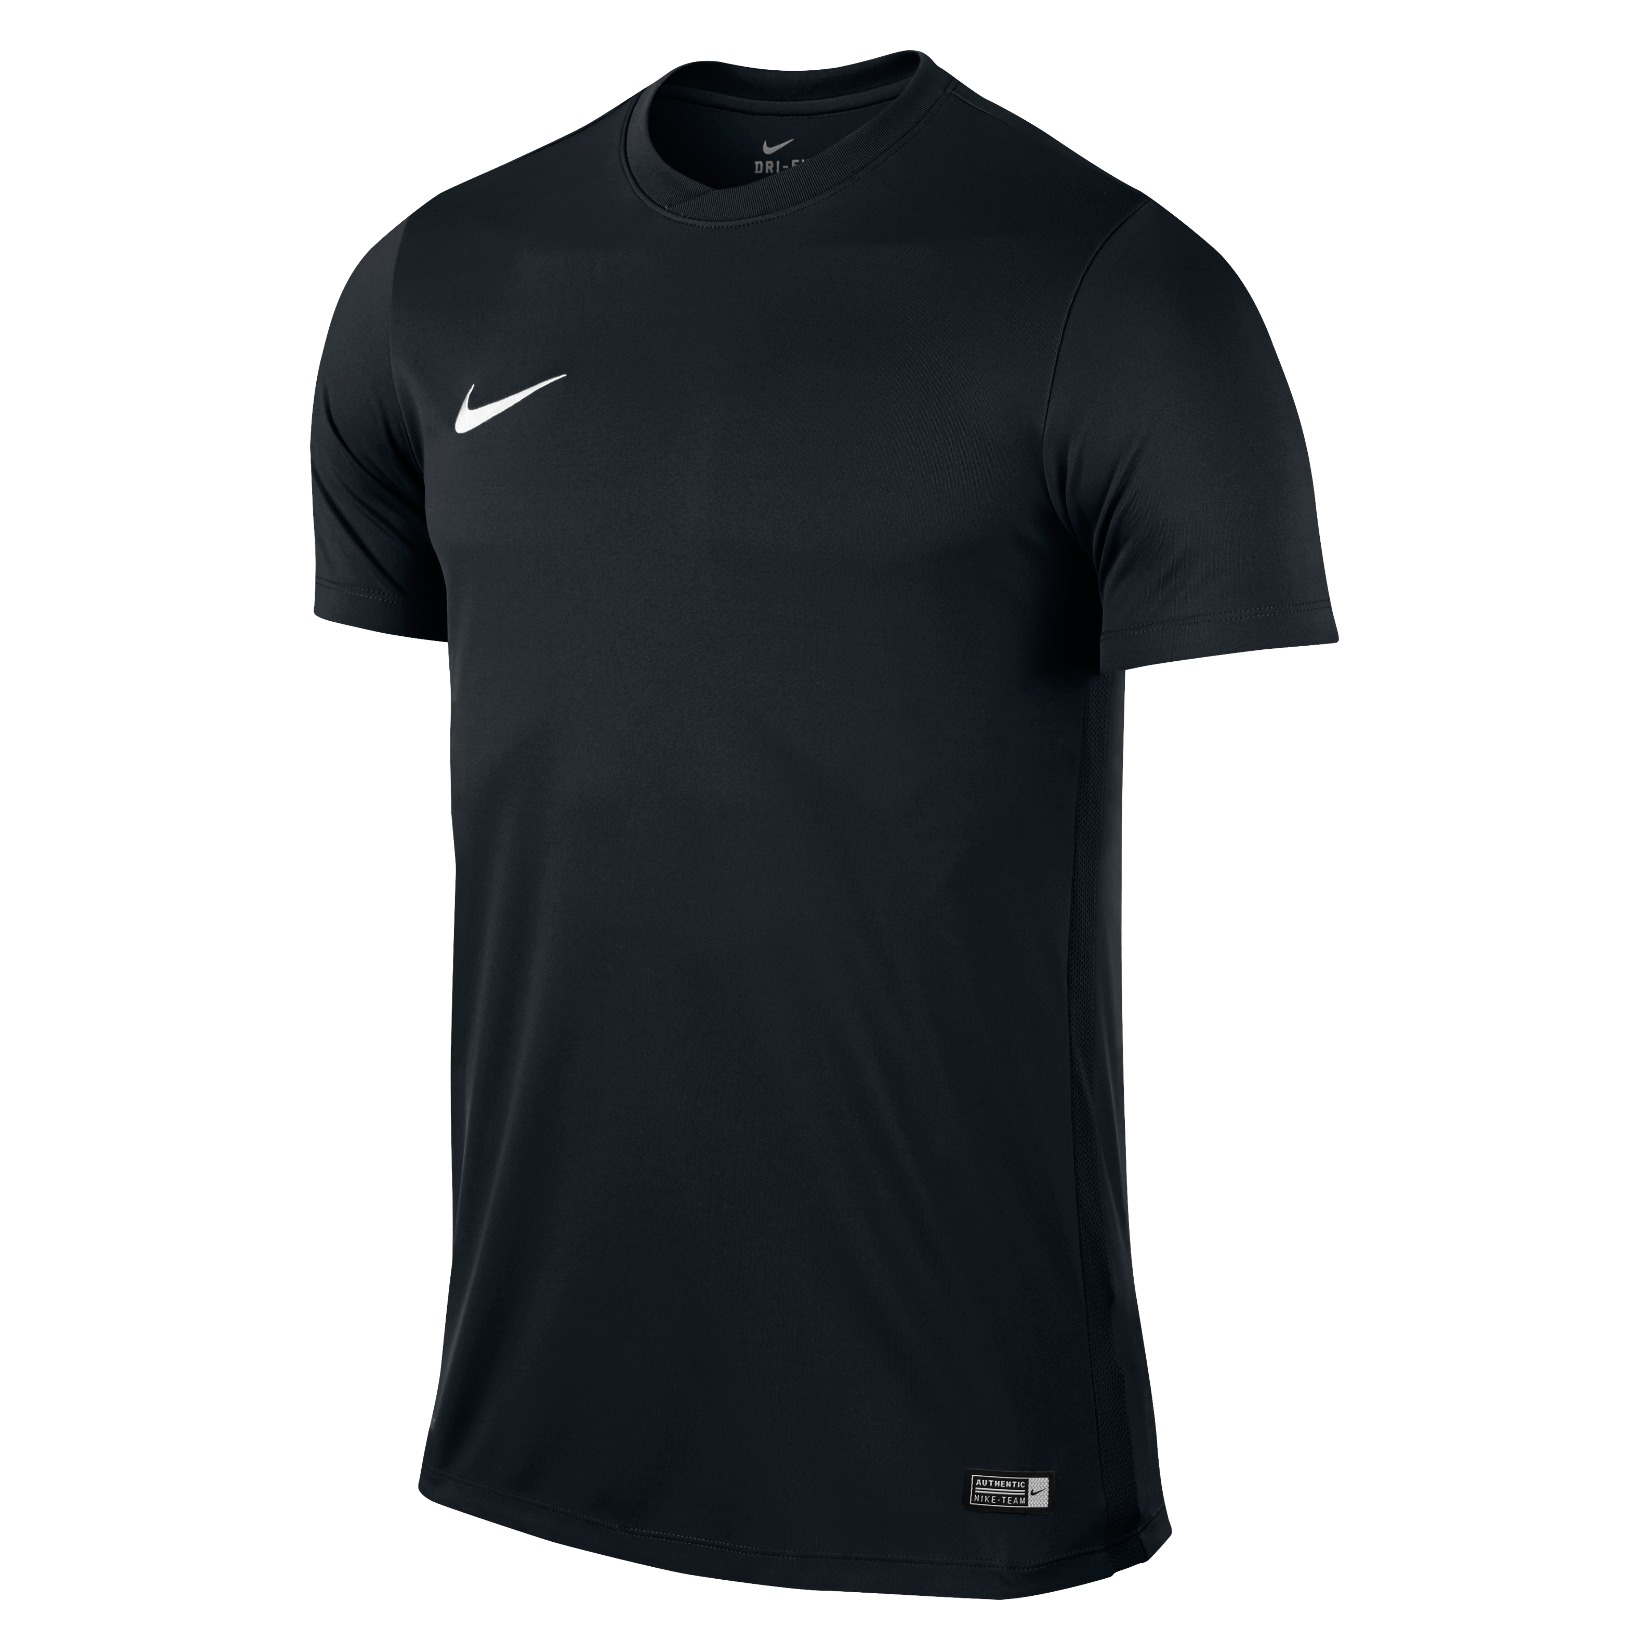 Nike Park VI Short Sleeve Shirt Black-White